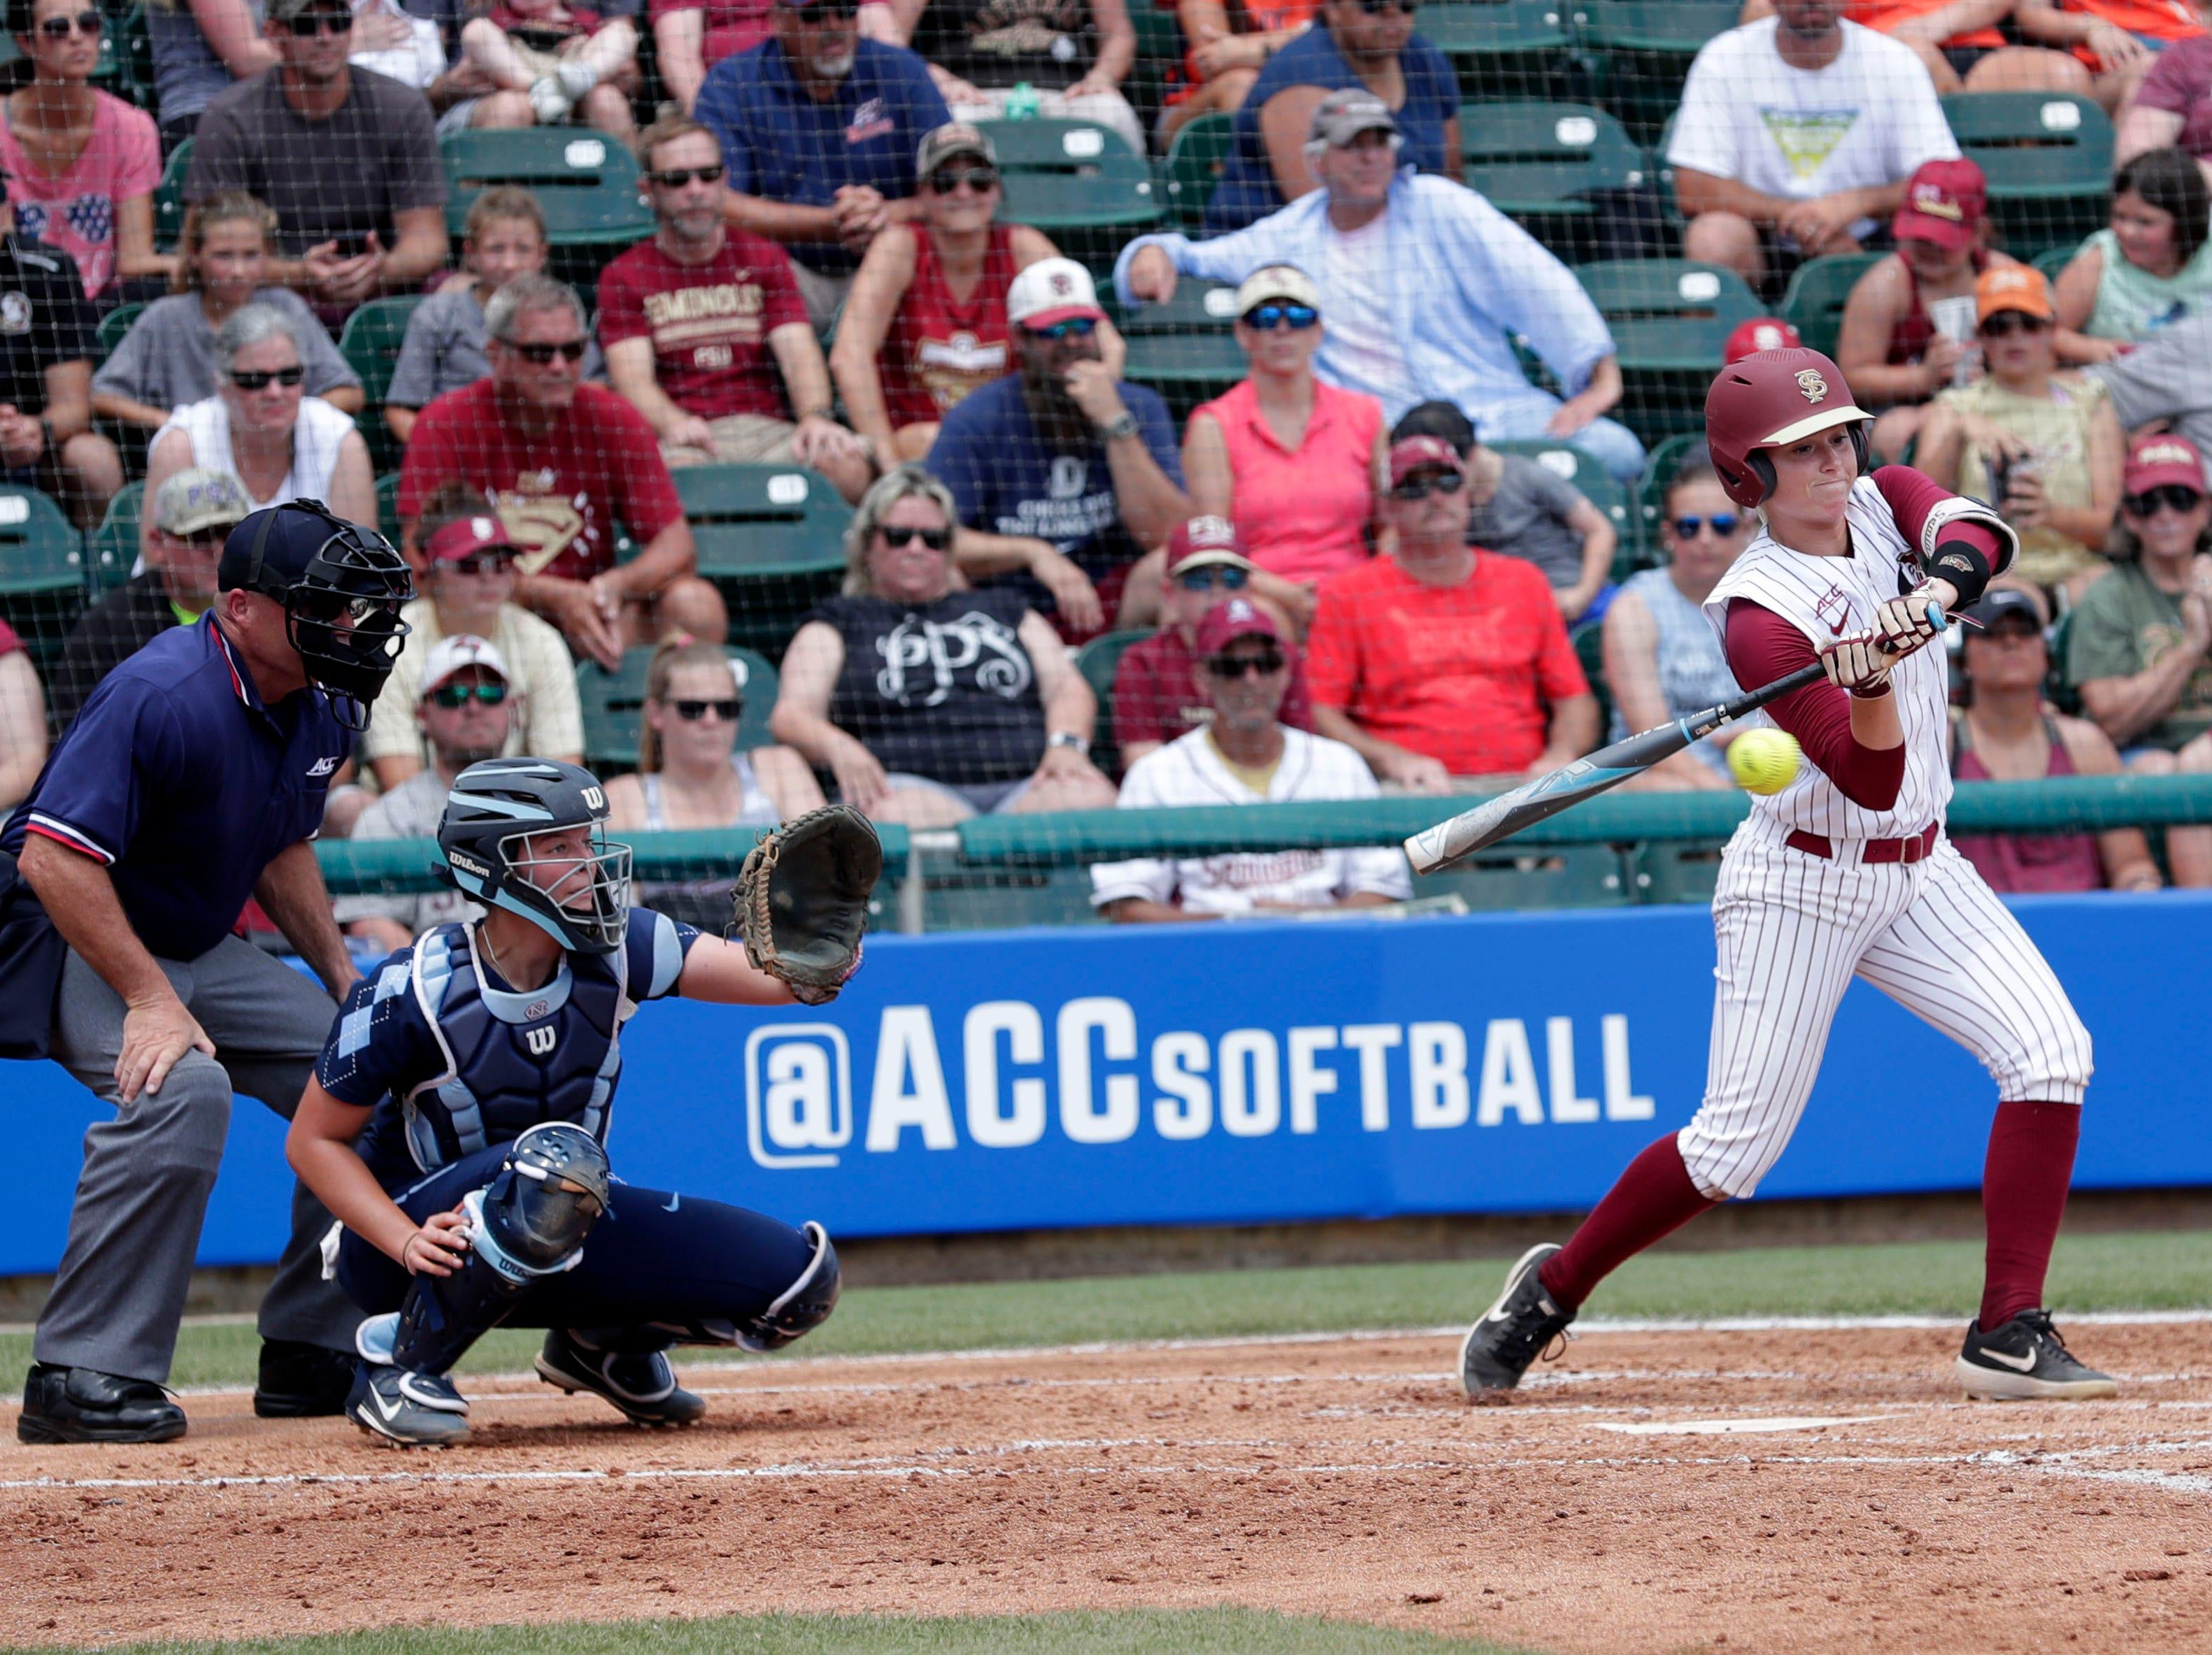 Florida State Seminoles infielder Dani Morgan (1) makes contact on her swing. The Florida State Seminoles host the UNC Tar Heels for the ACC Softball Tournament finals Saturday, May 11, 2019.